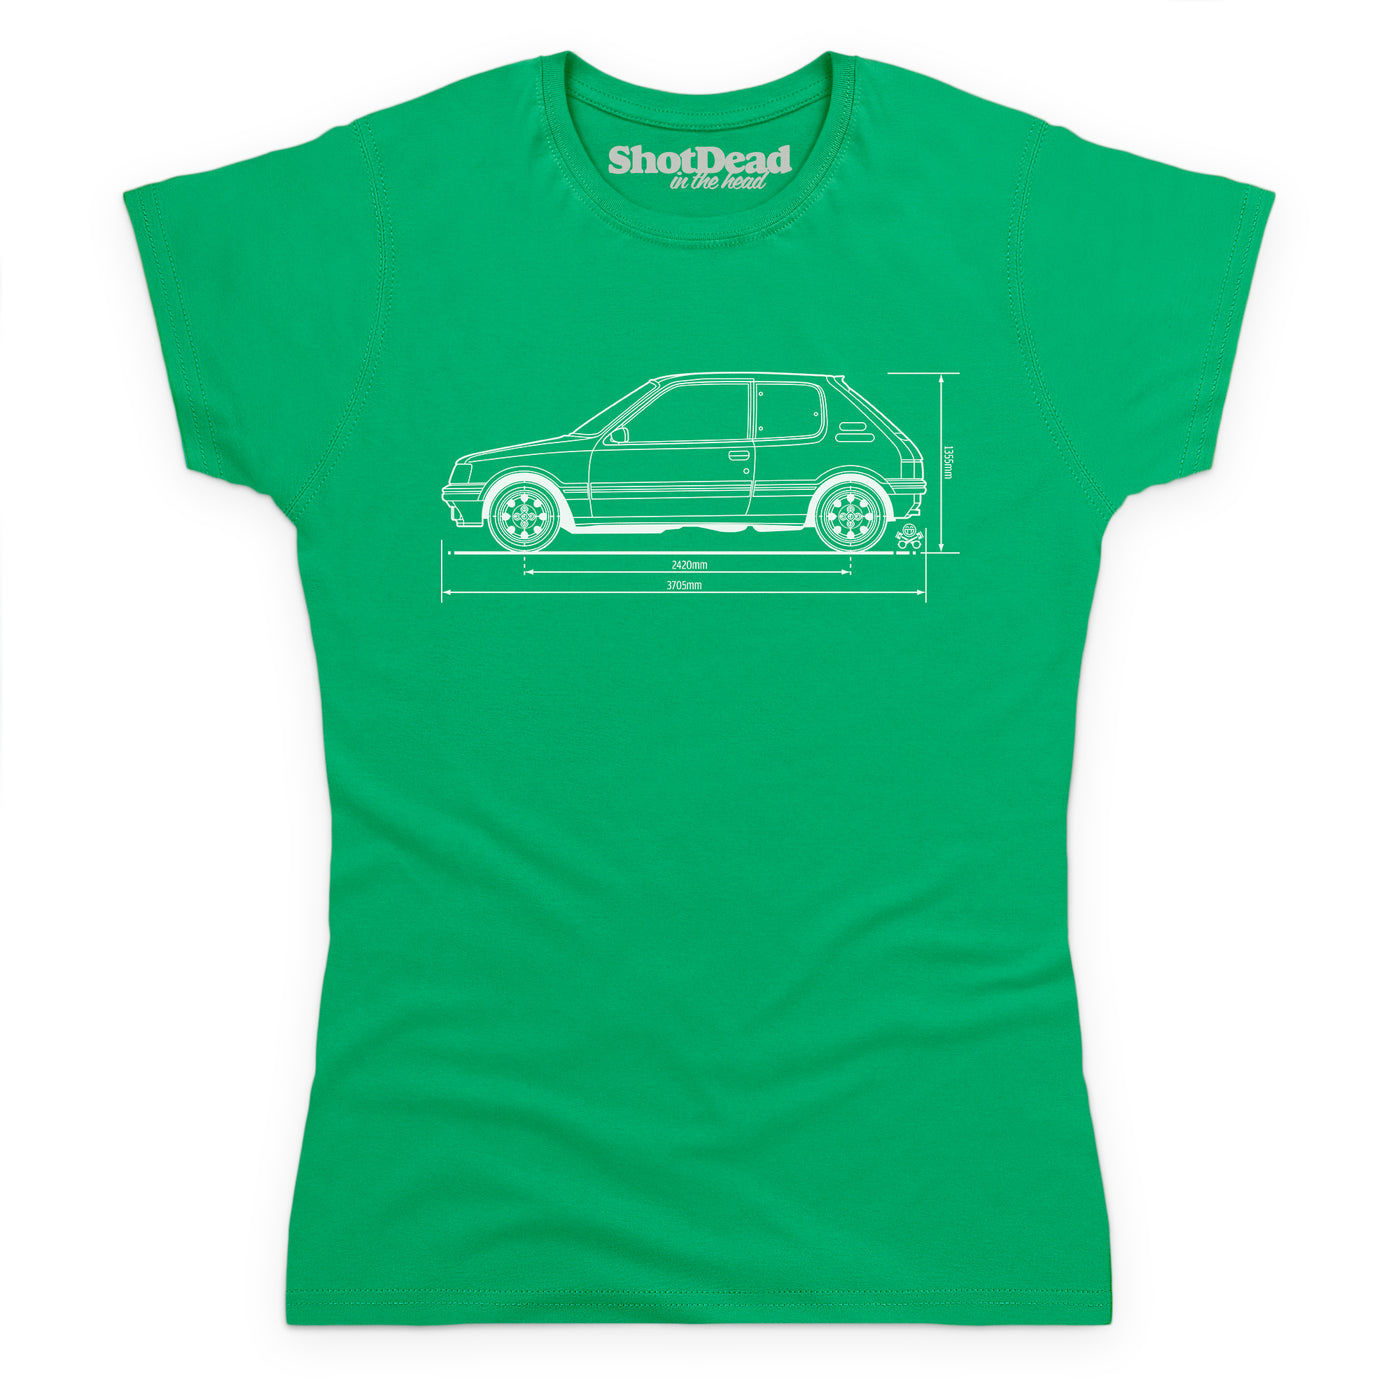 Style: Female, Color: Celtic Green.